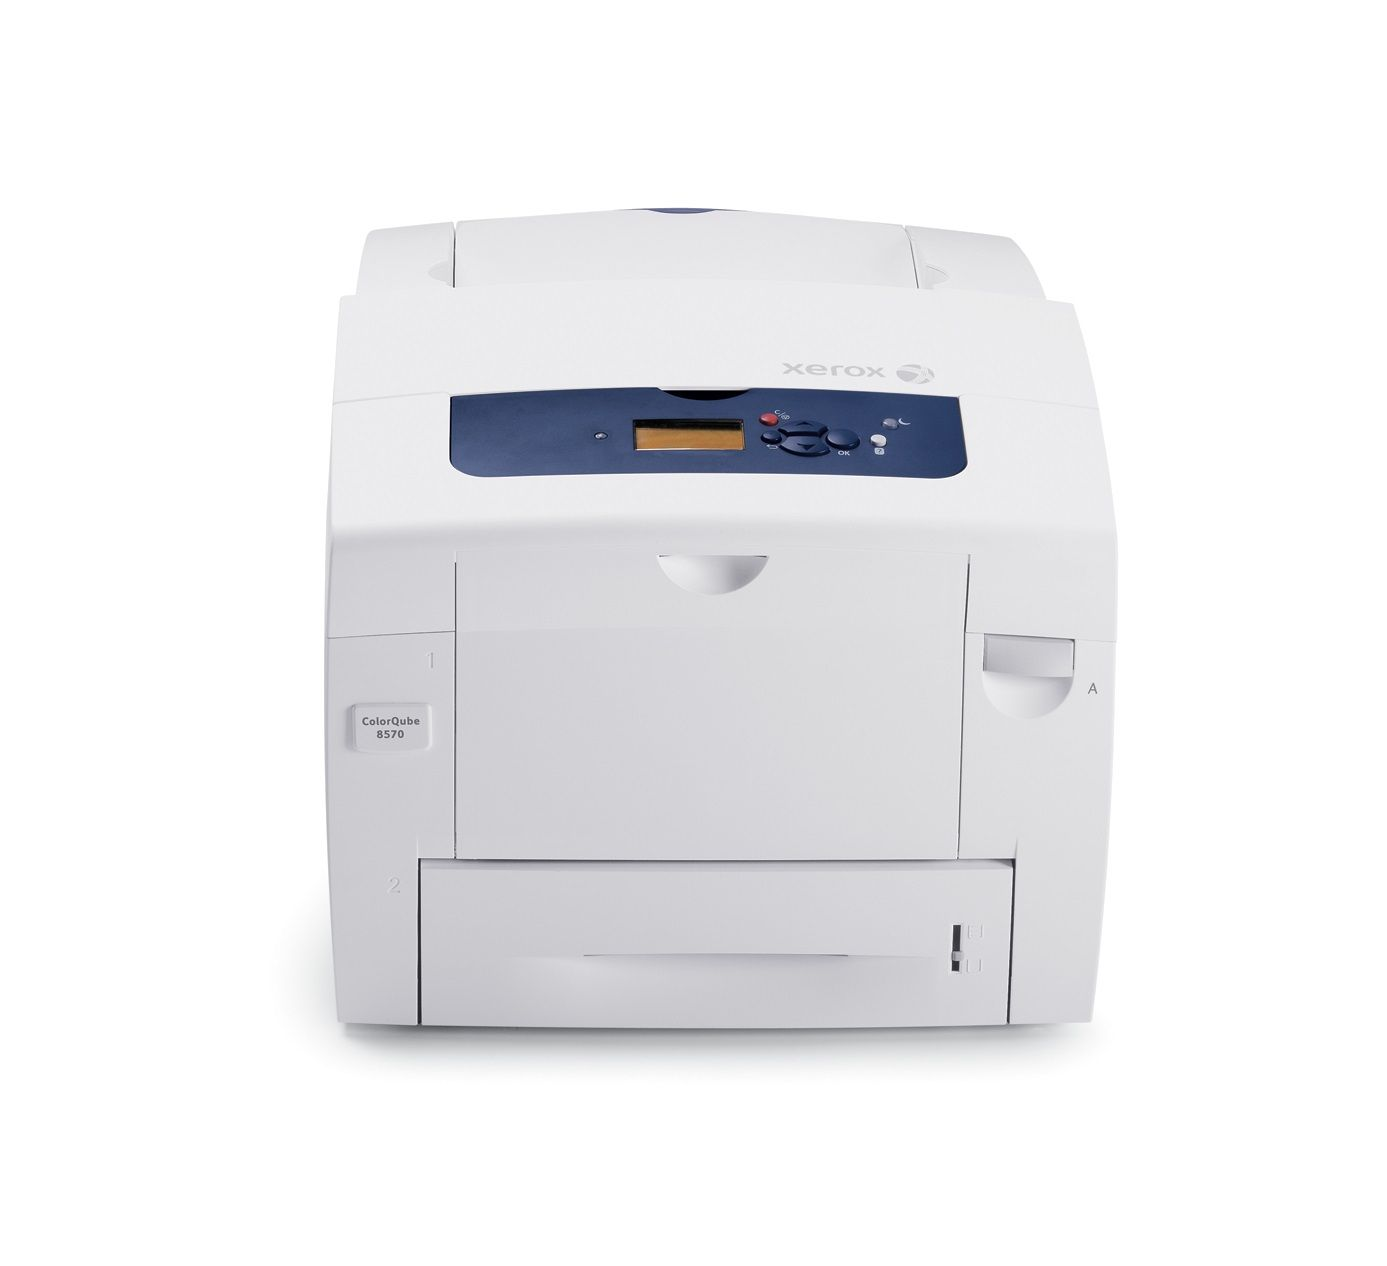 Xerox Colorqube 8570 Fast Print Speed Incredible Detail And